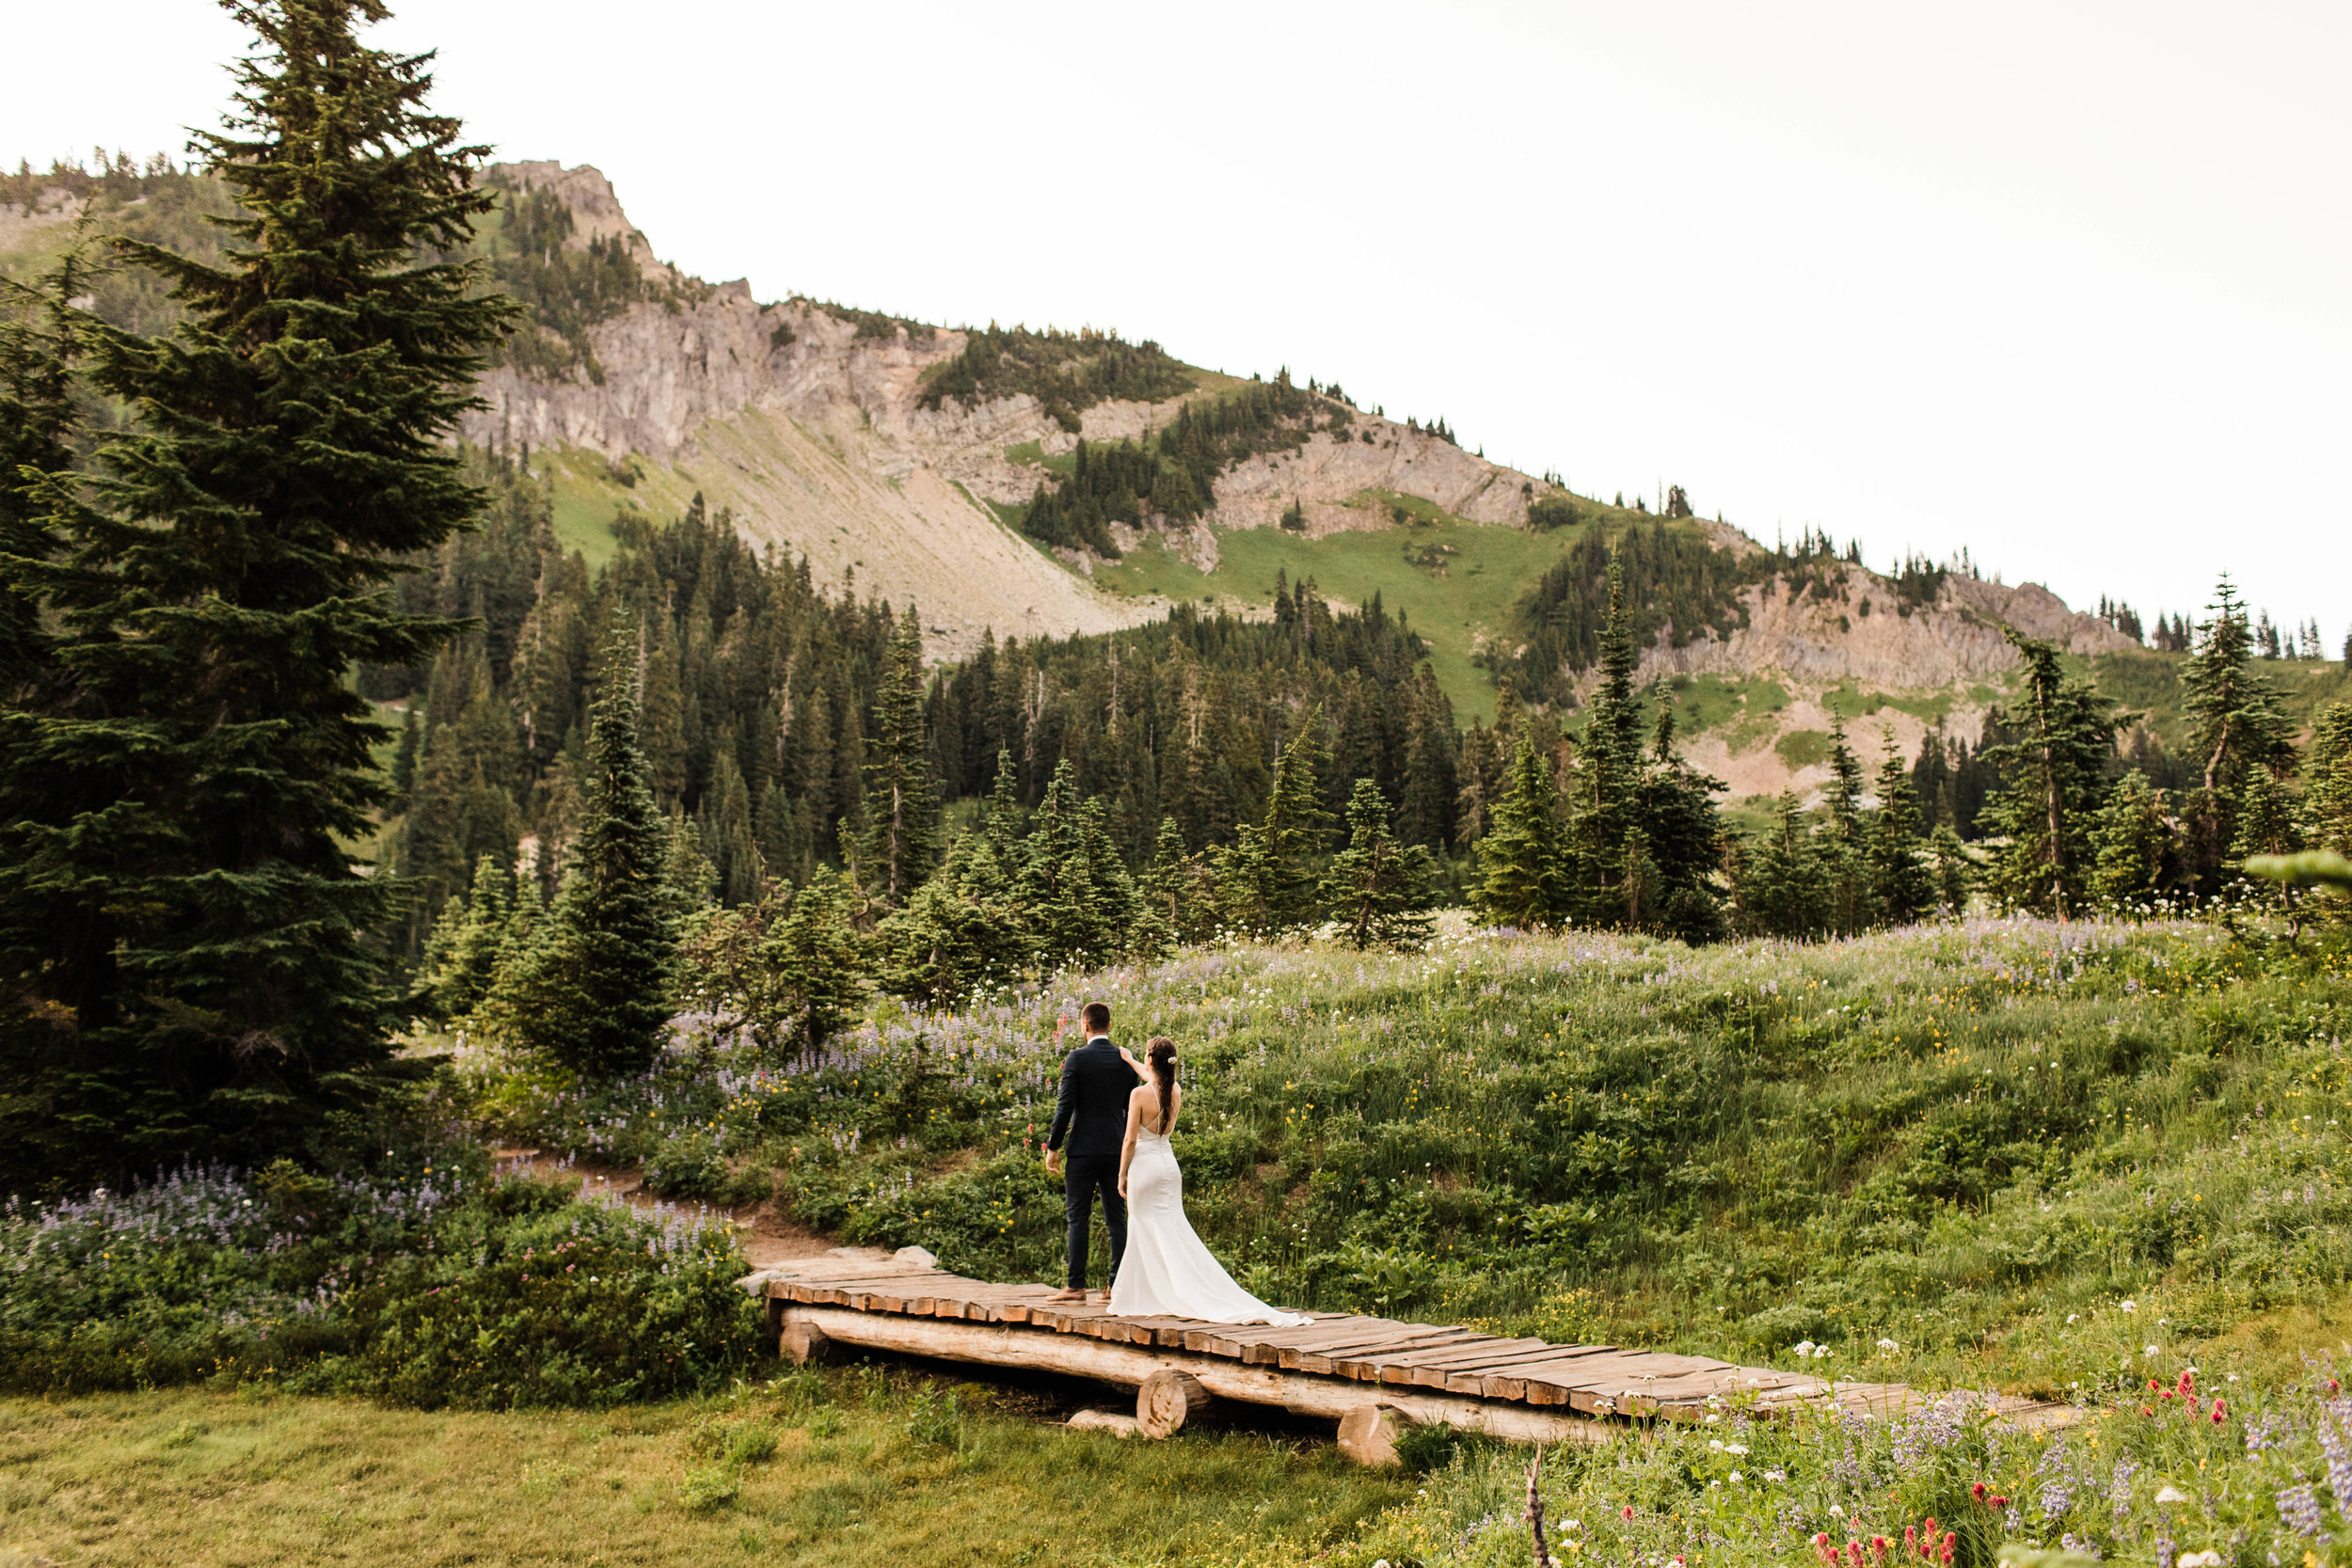 bride and groom's elopement first look in Mount Rainier National Park | Washington state elopement photographers